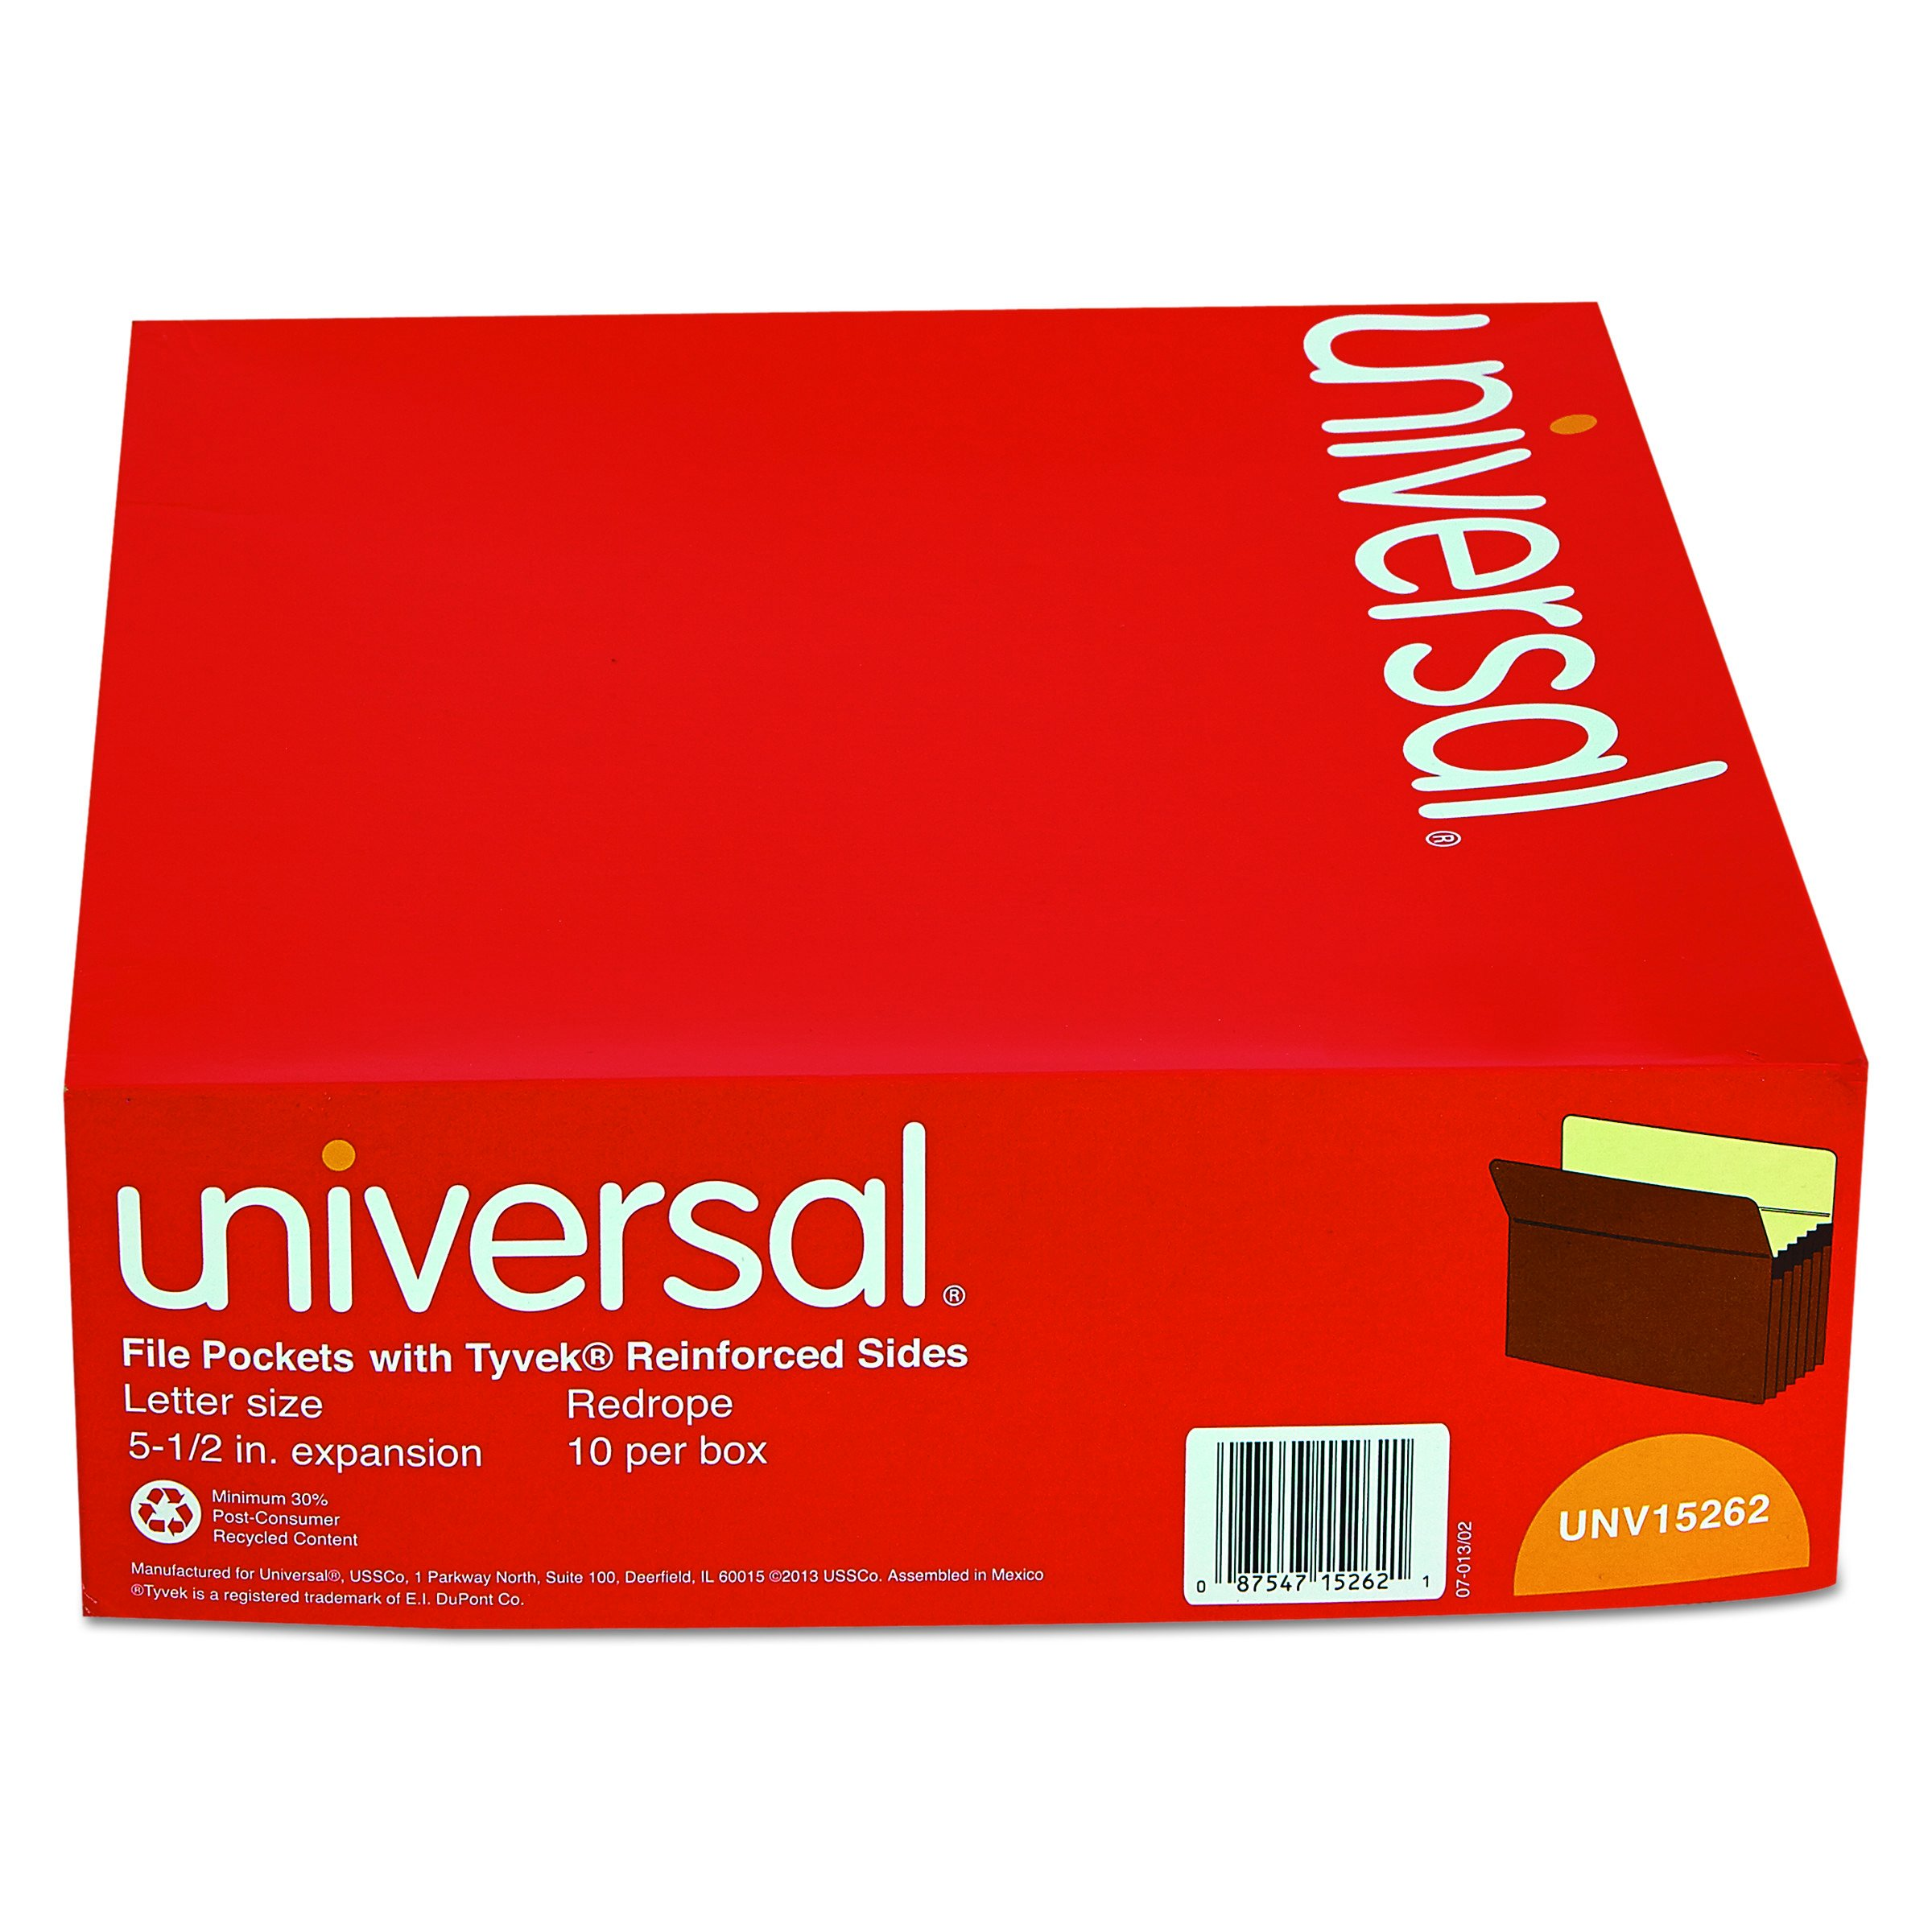 Universal 15262 5 1/4 Inch Expansion File Pockets, Straight Tab, Letter, Redrope/Manila (Box of 10) by Universal